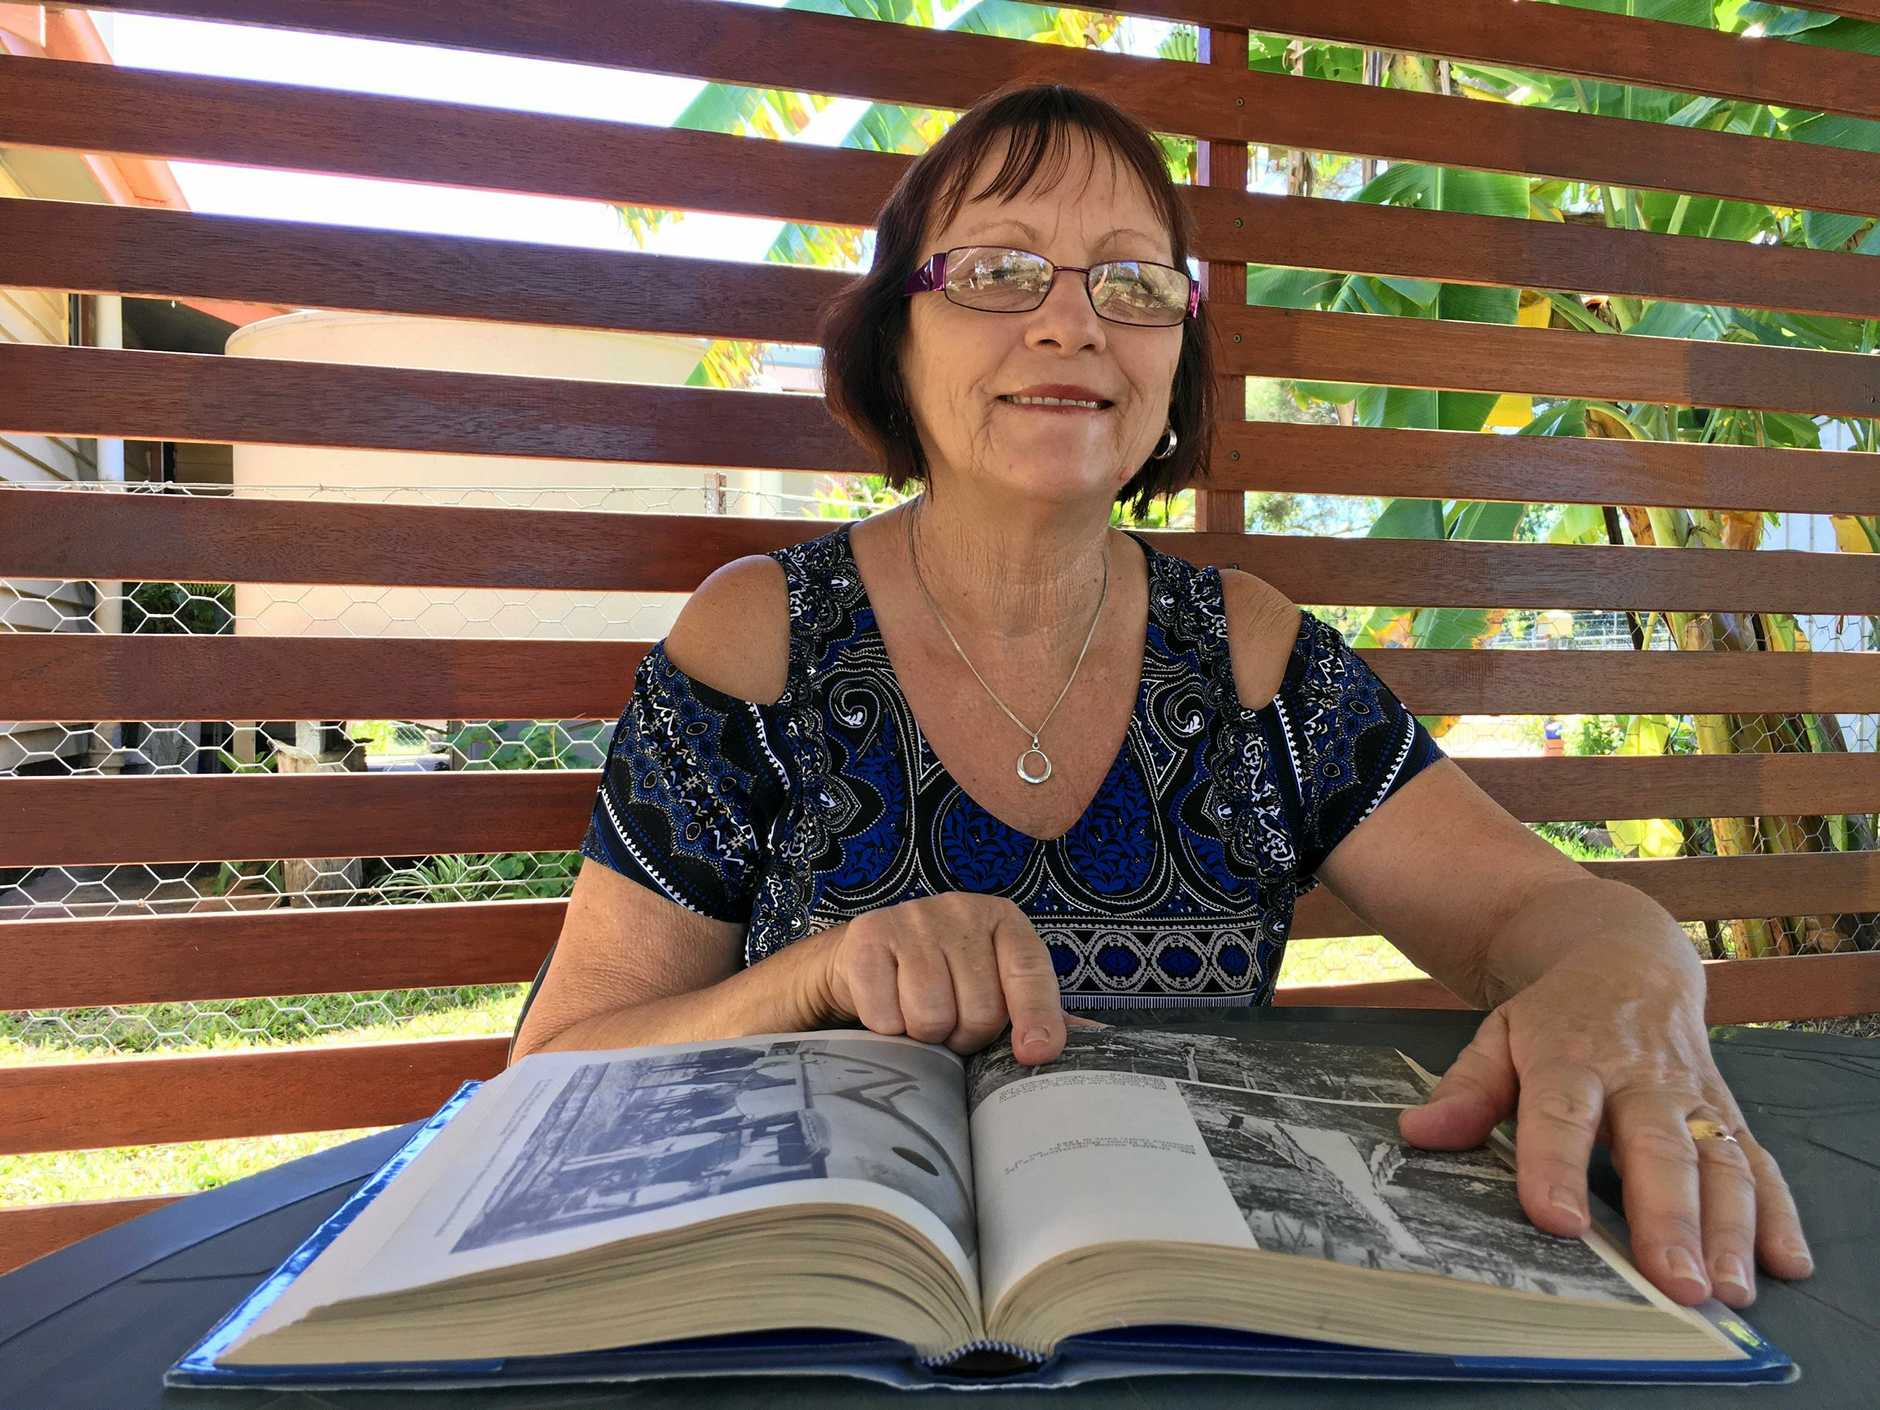 ROYAL ENGAGEMENT: Mount Morgan resident Denice Bosomworth said she was excited to hear the royal engagement between Prince Harry and Meghan Markle.